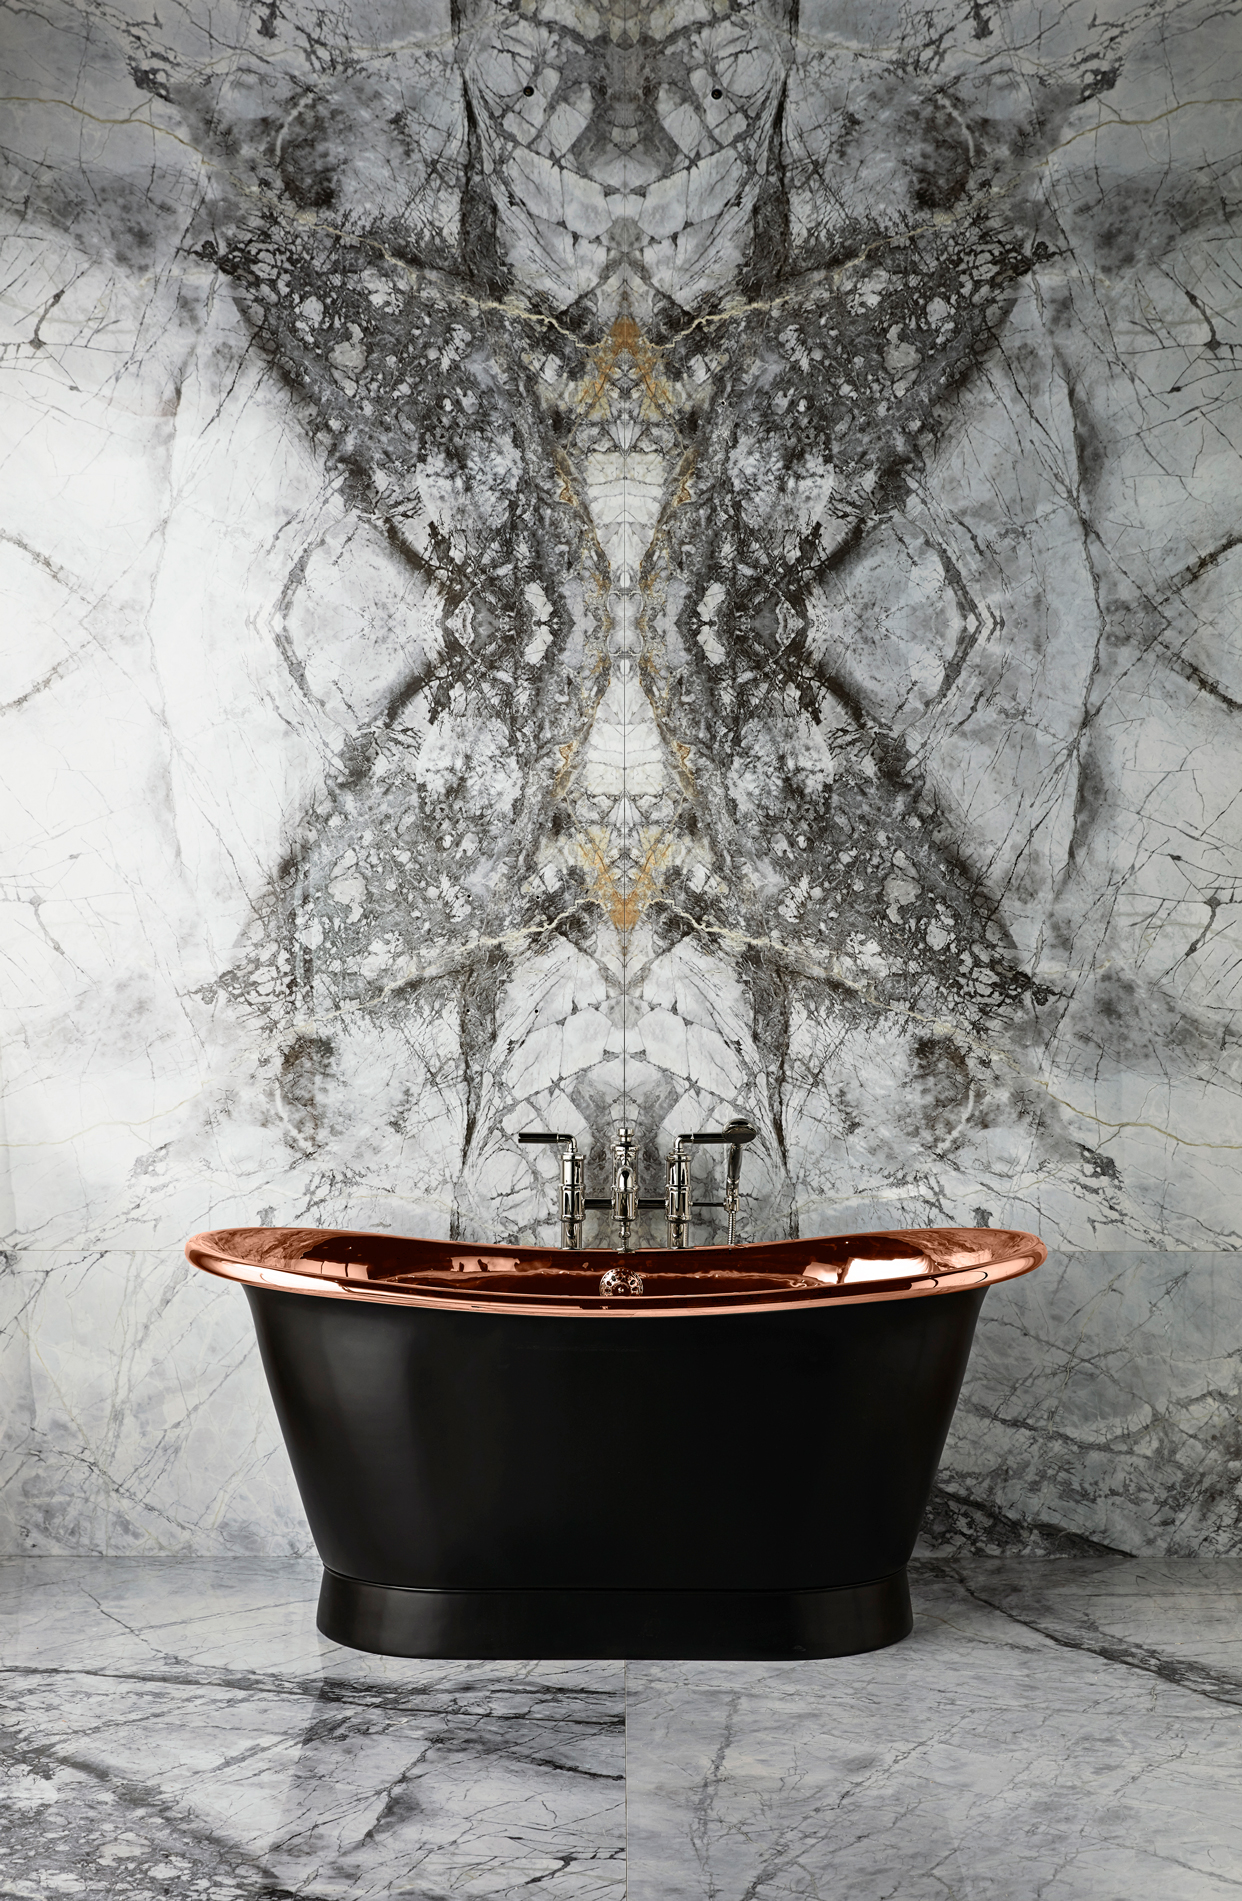 The Baby Tyne Copper Bath Tub With A Painted Exterior